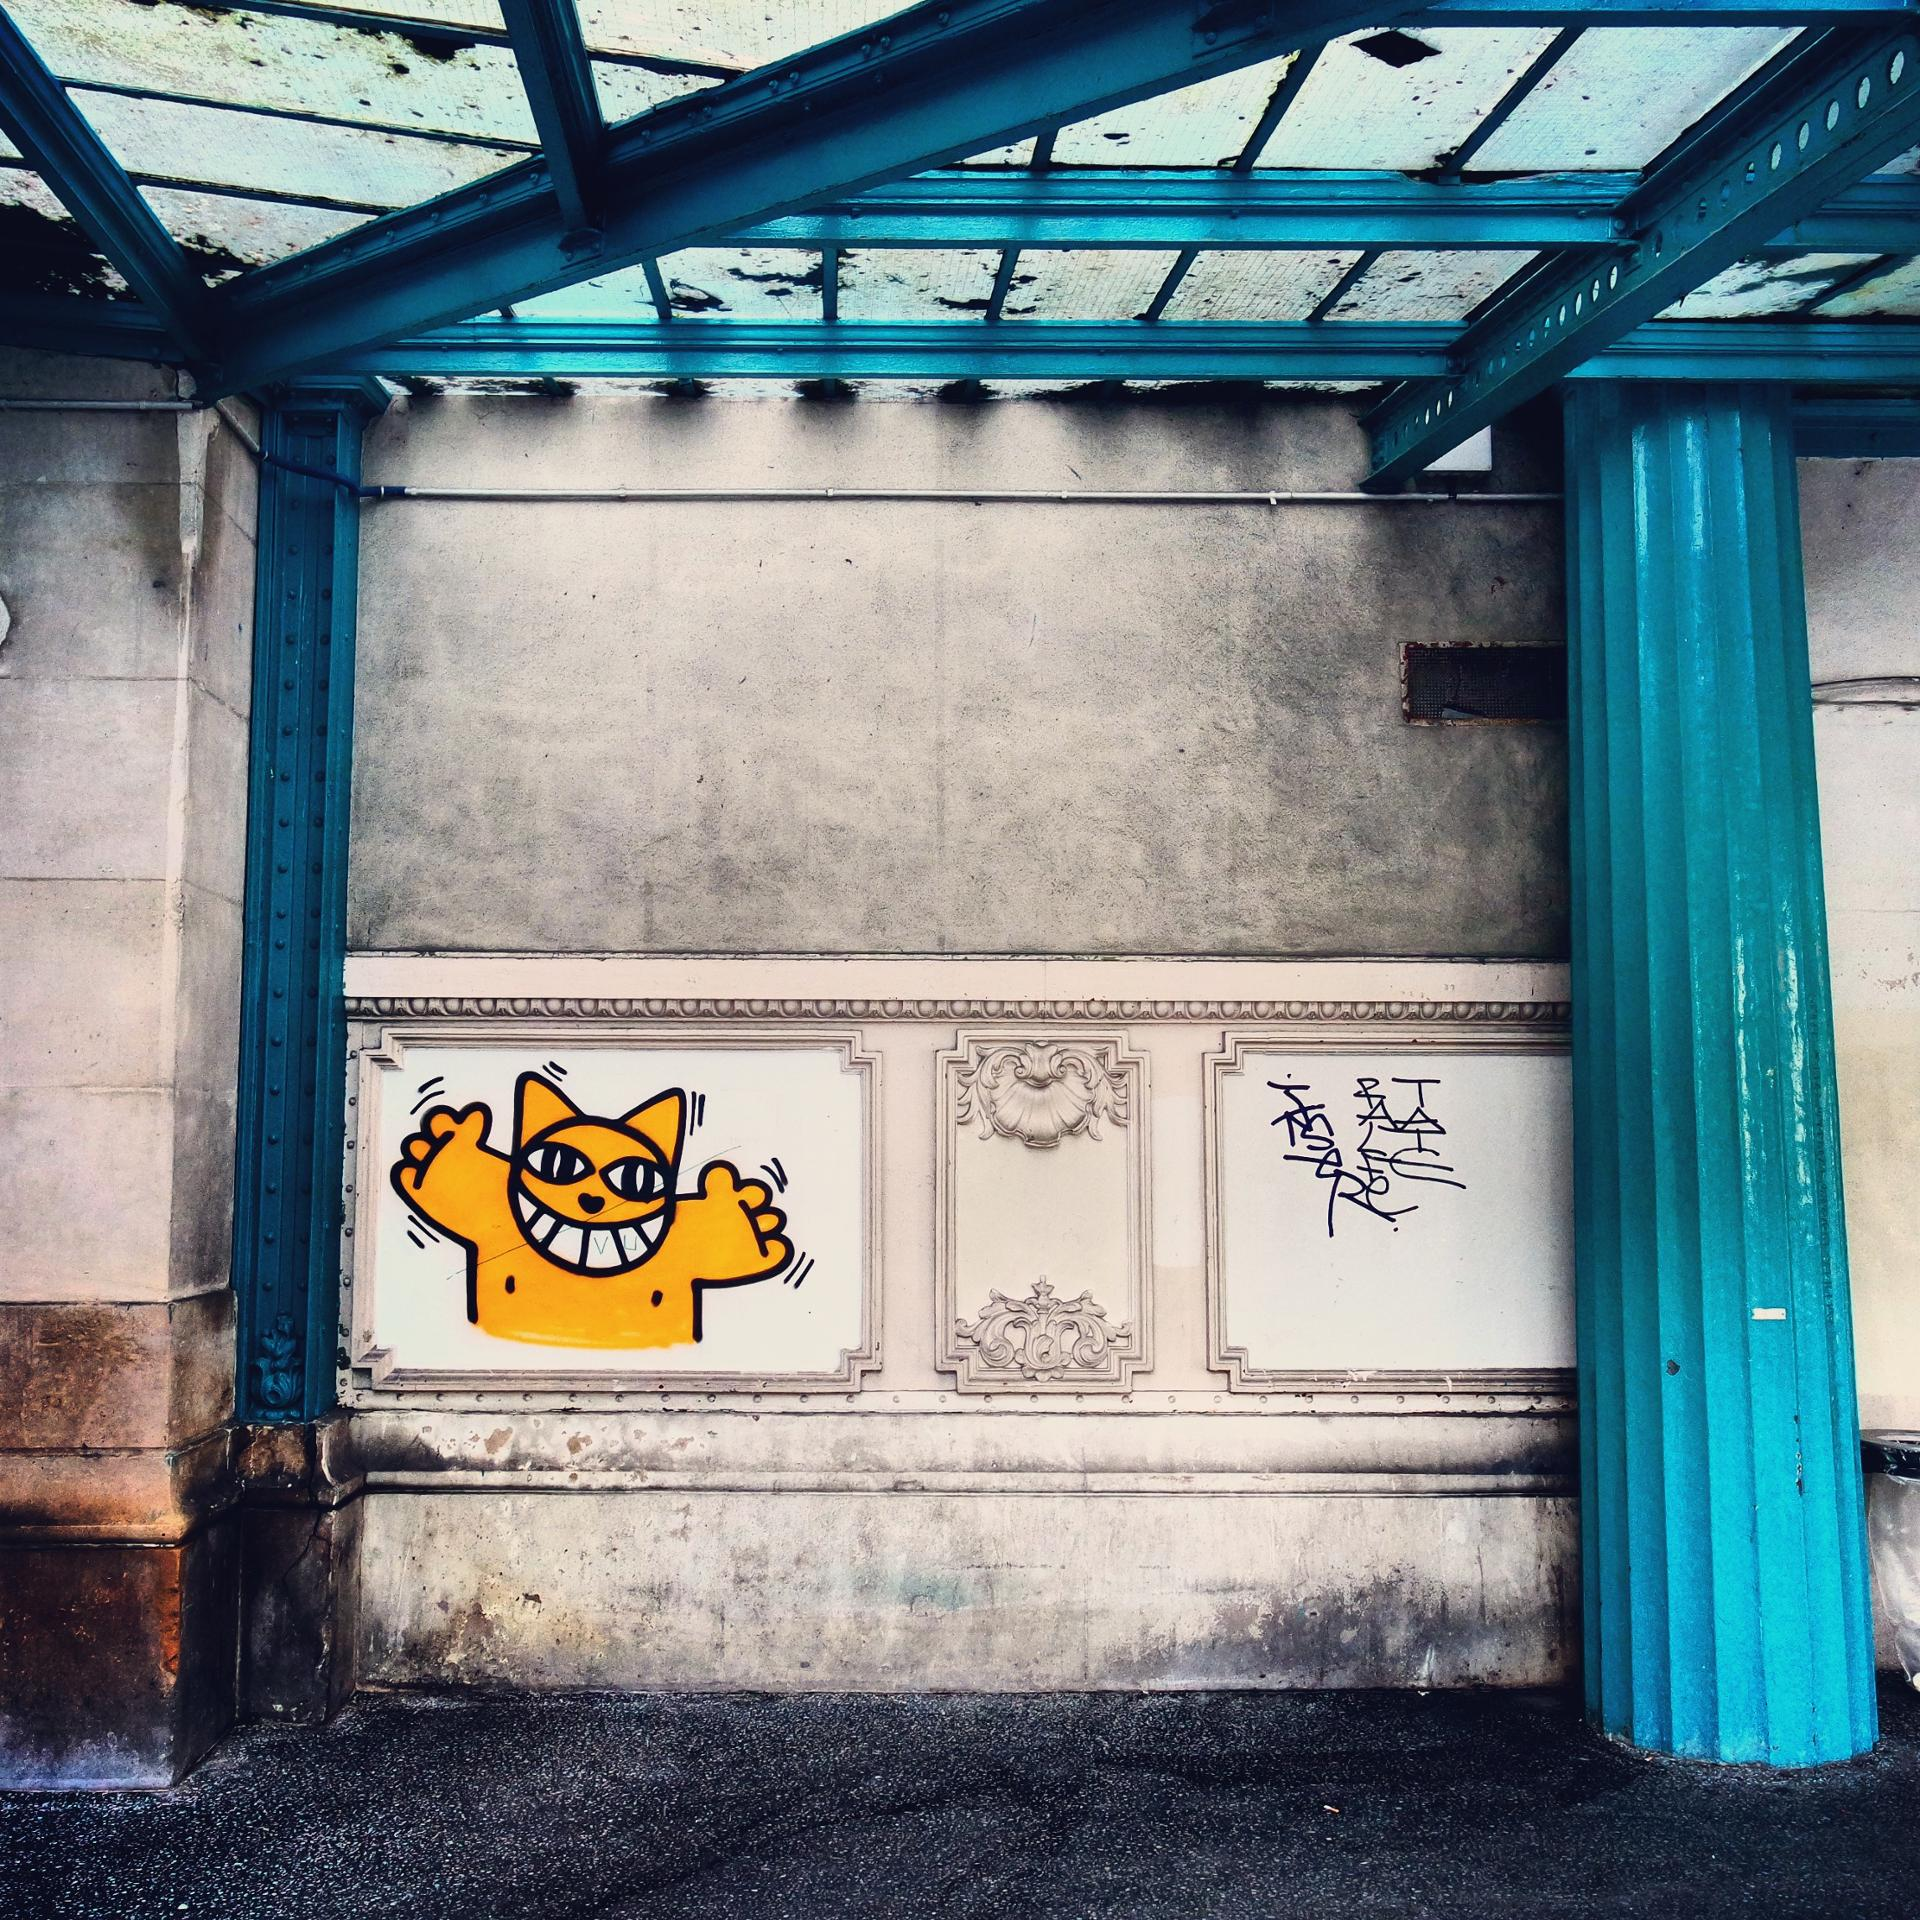 M. Chat by Thoma Vuille - Gare d'Austerlitz